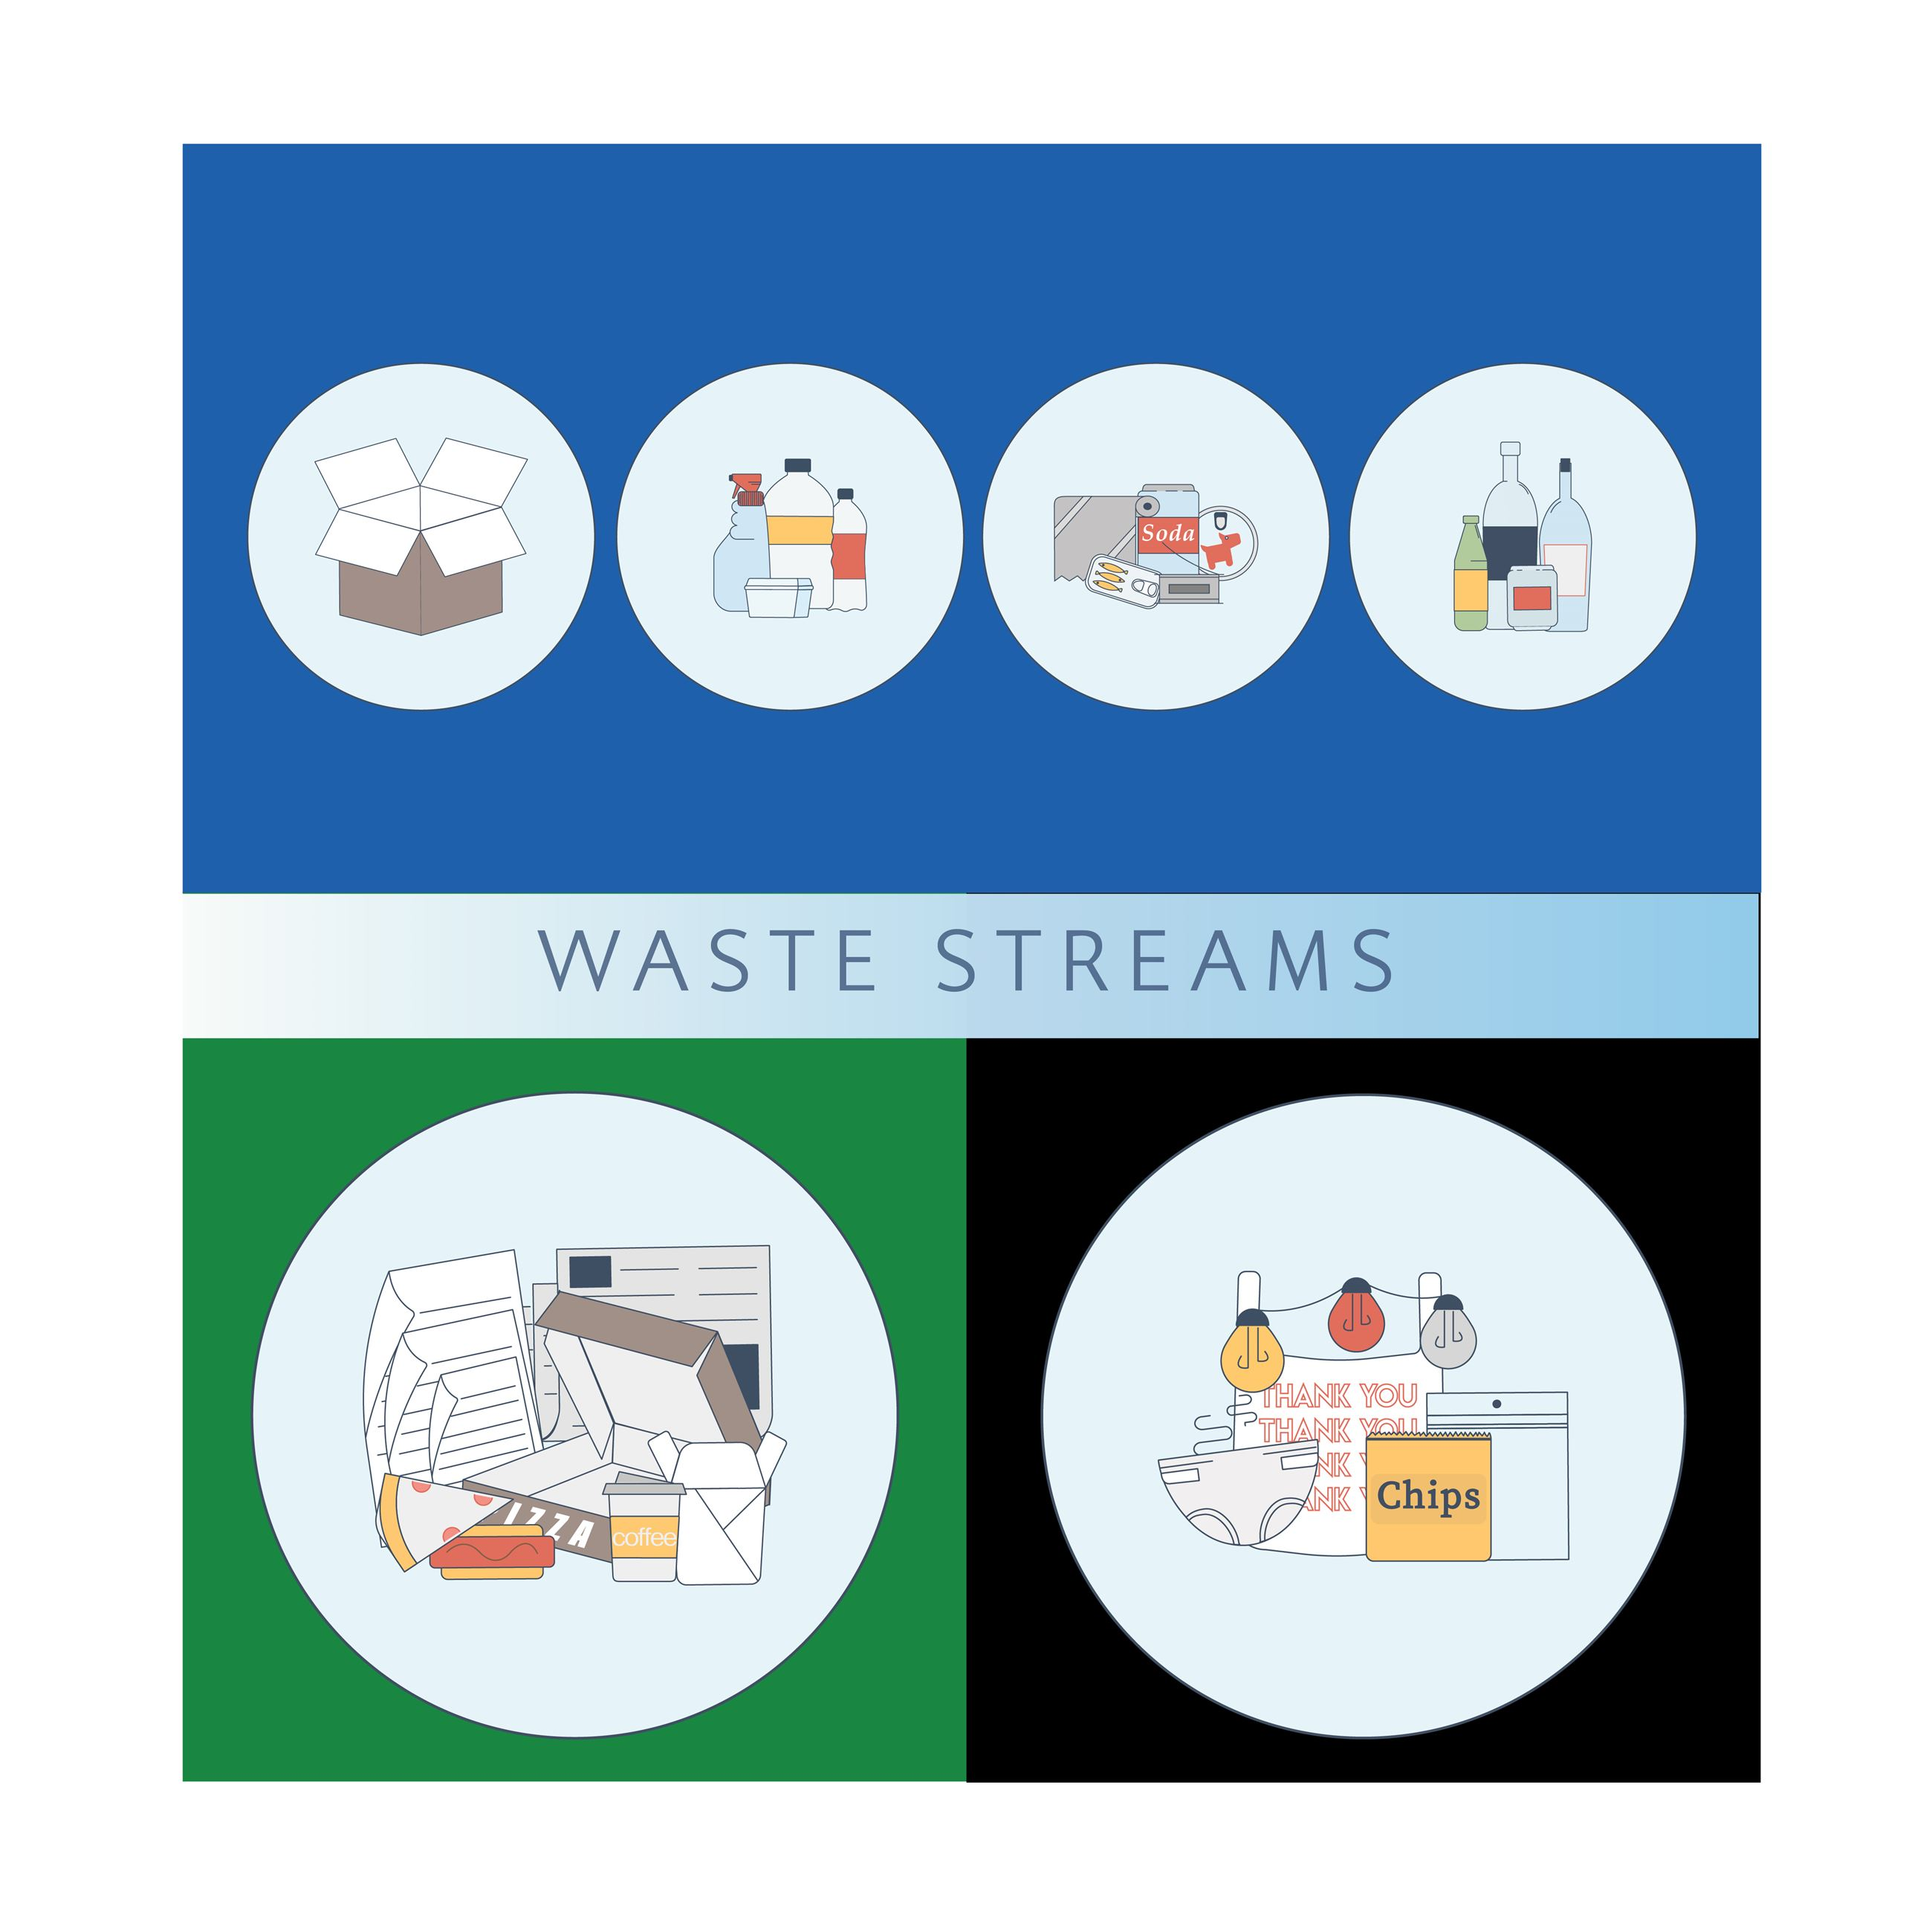 Waste streams